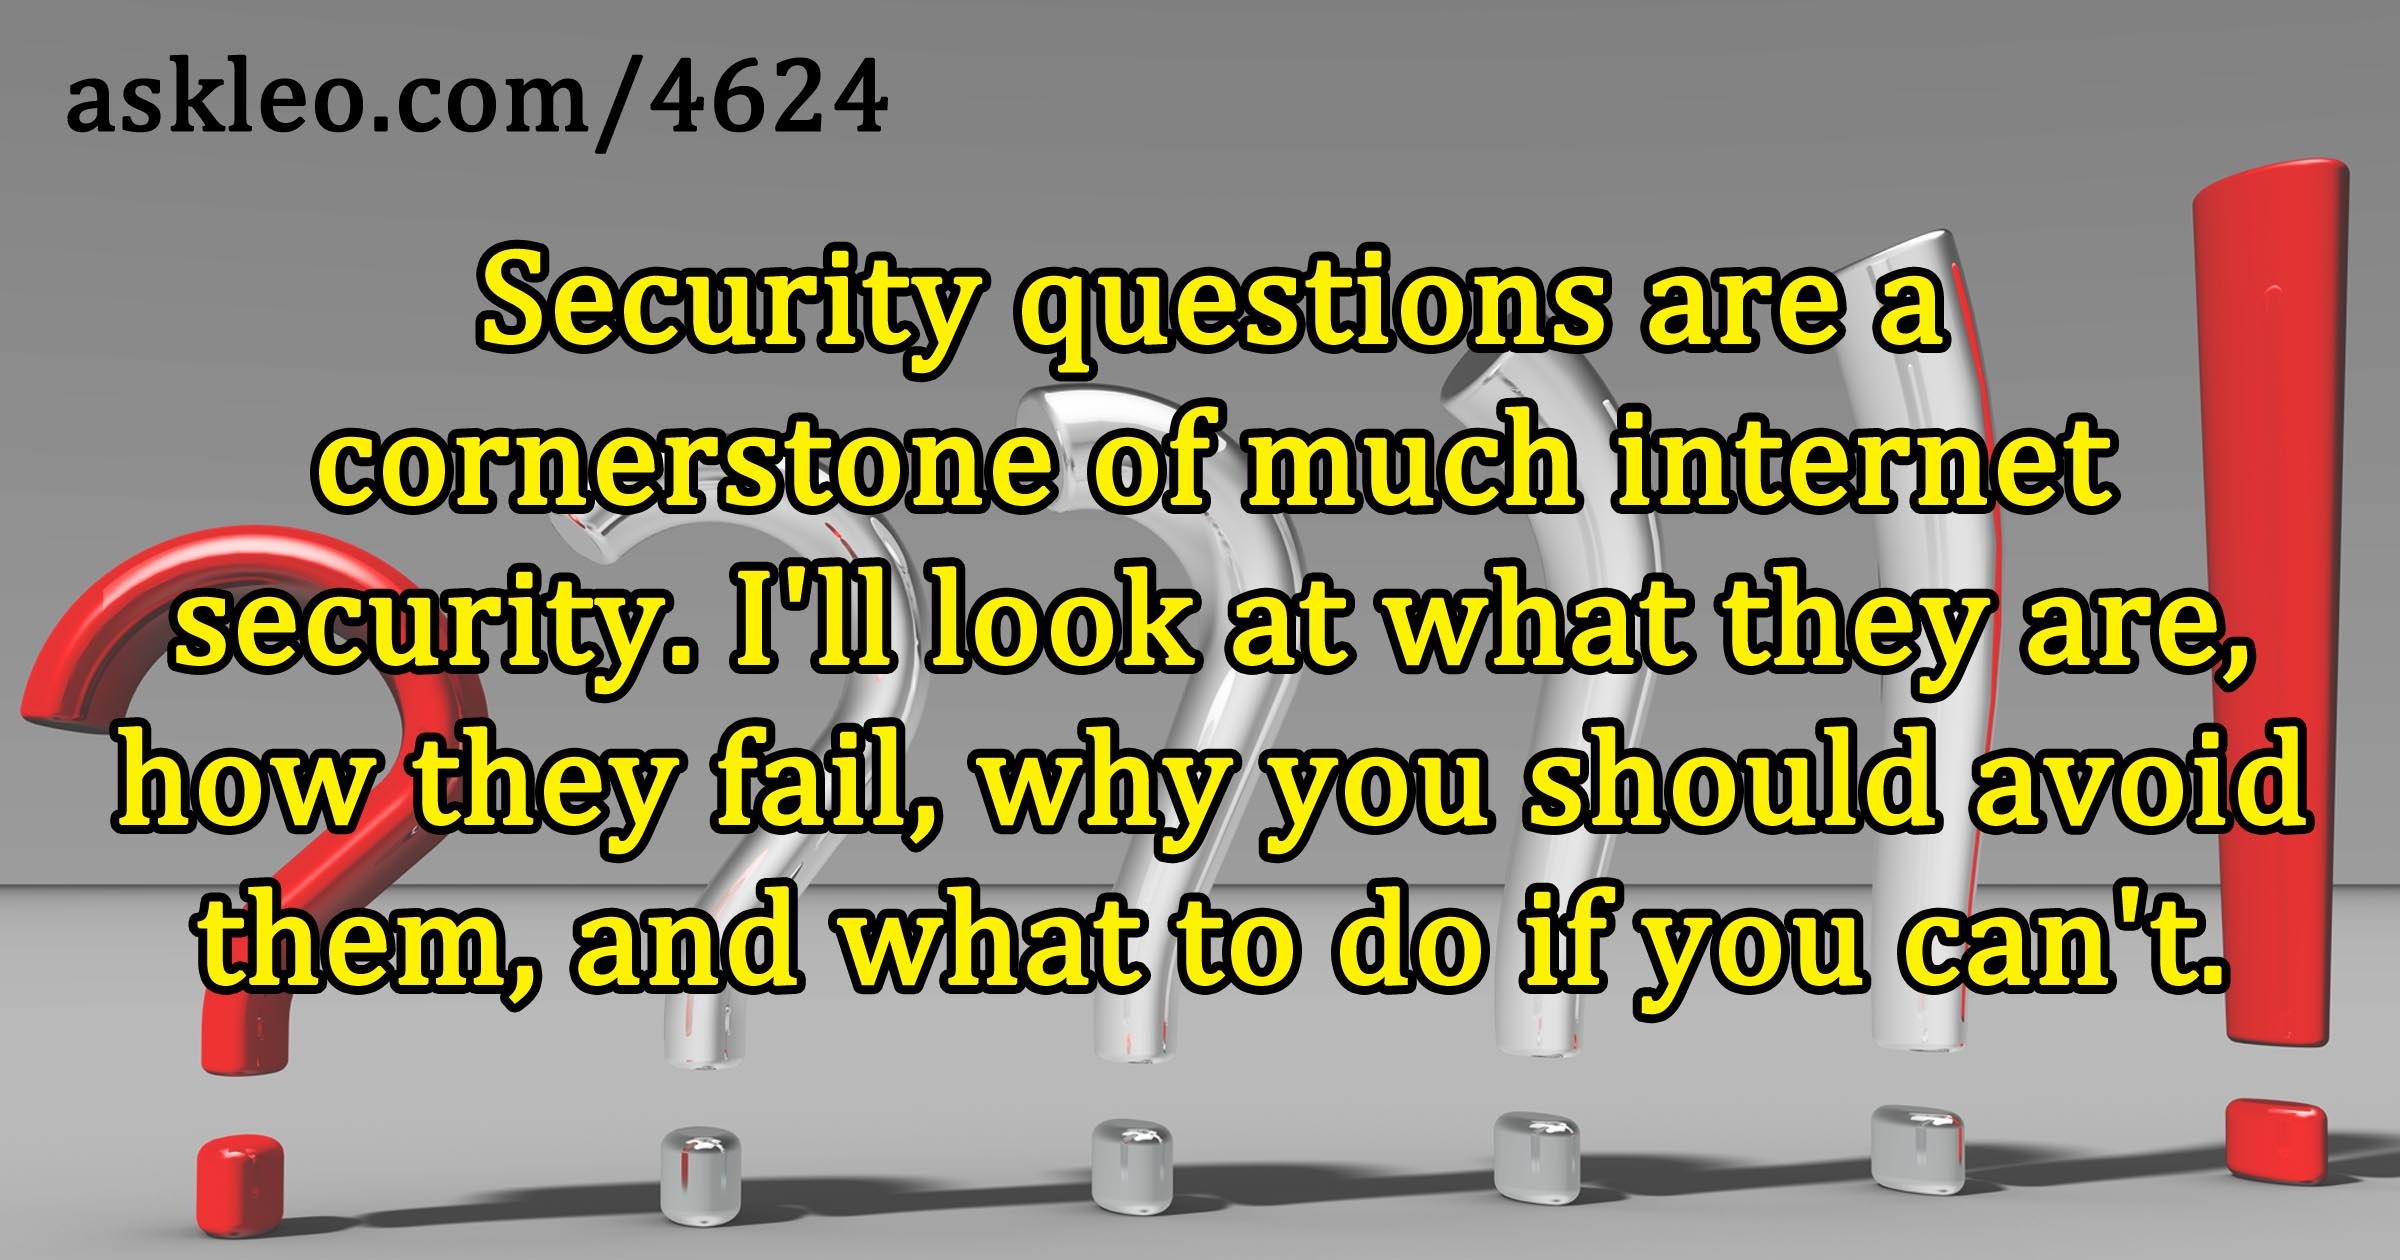 How to Choose Good Security Questions